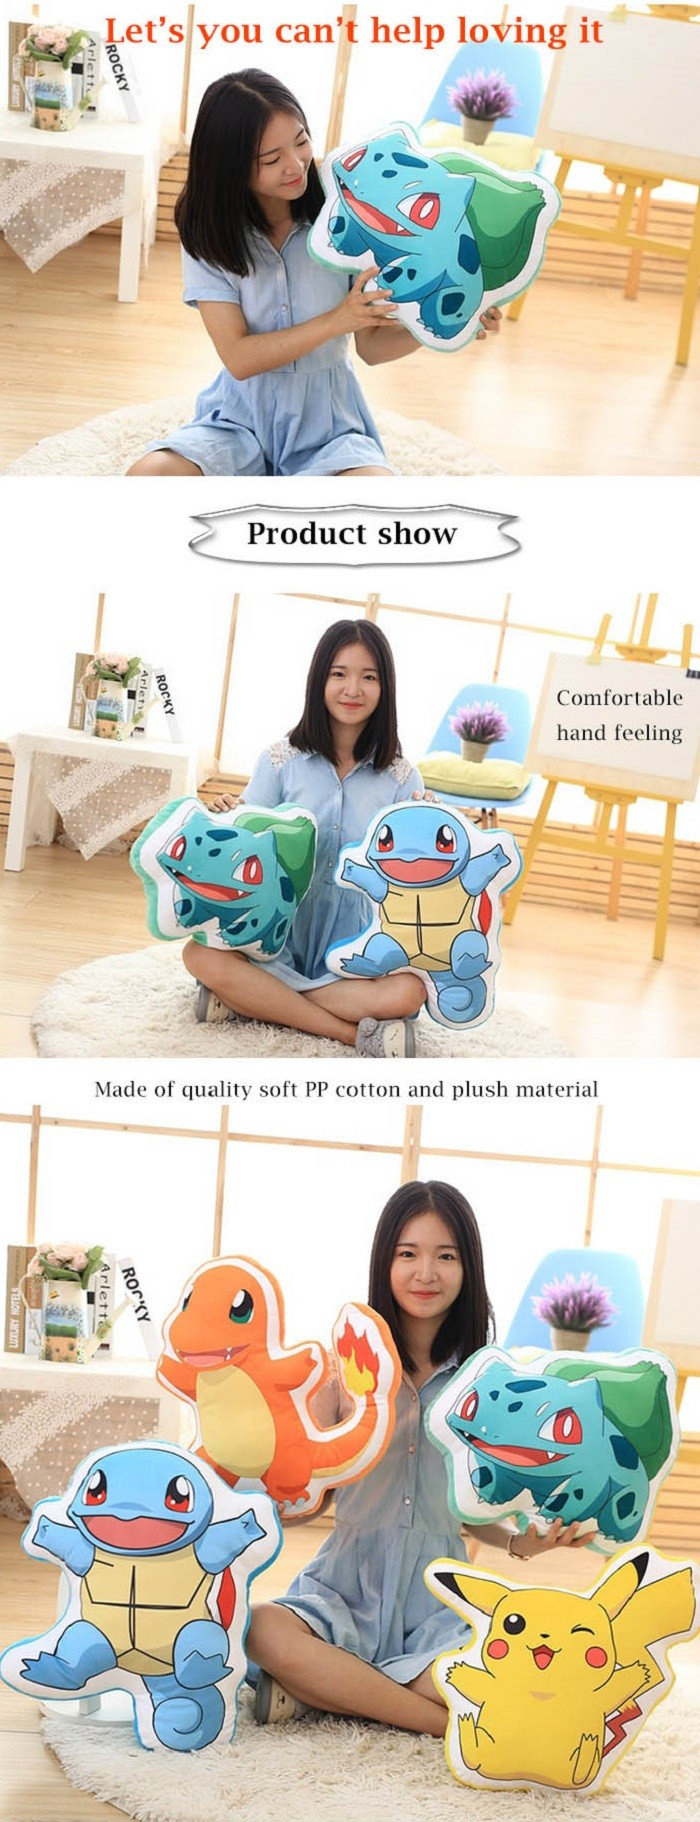 Animation Figure Plush Toy Stuffed Doll Decoration Gift - 15.7 inch